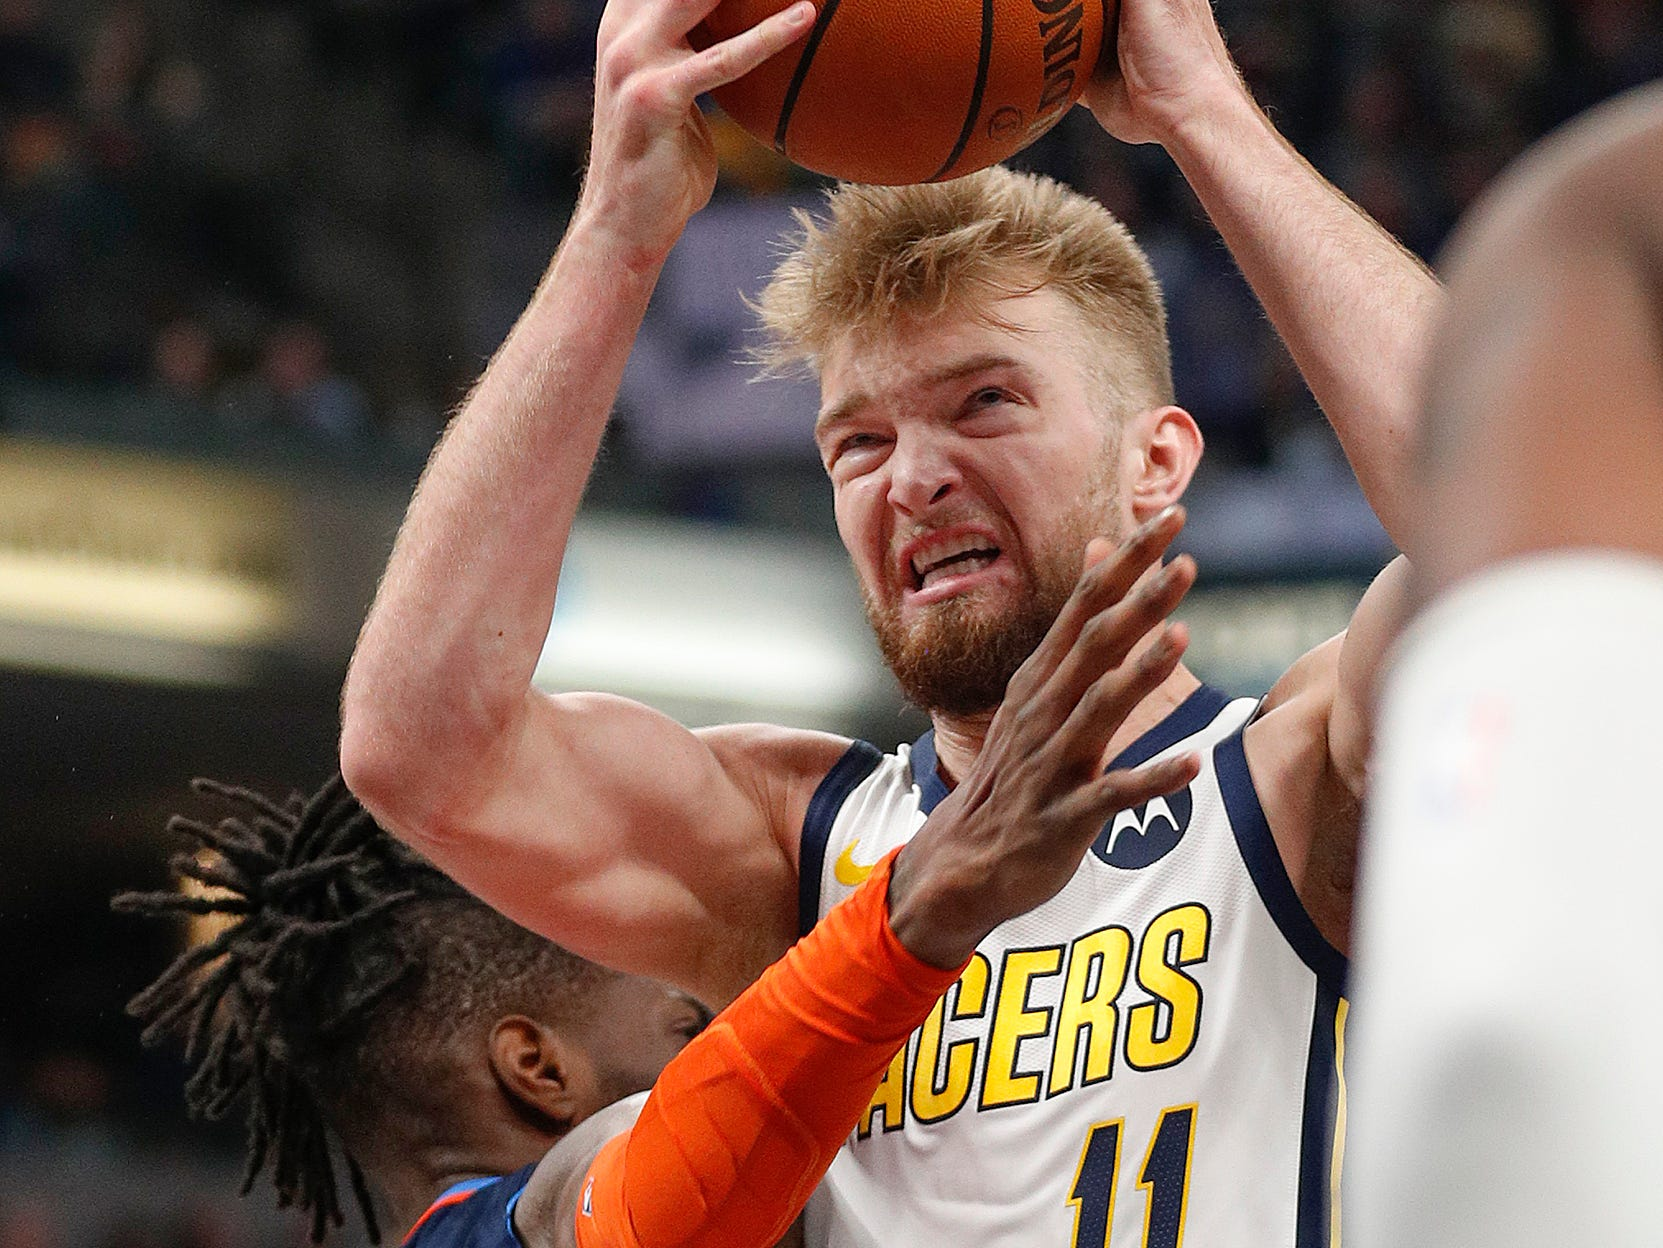 Indiana Pacers forward Domantas Sabonis (11) is fouled by Oklahoma City Thunder forward Nerlens Noel (3) in the first half of their game at Bankers Life Fieldhouse on Thursday, Mar. 14, 2019.